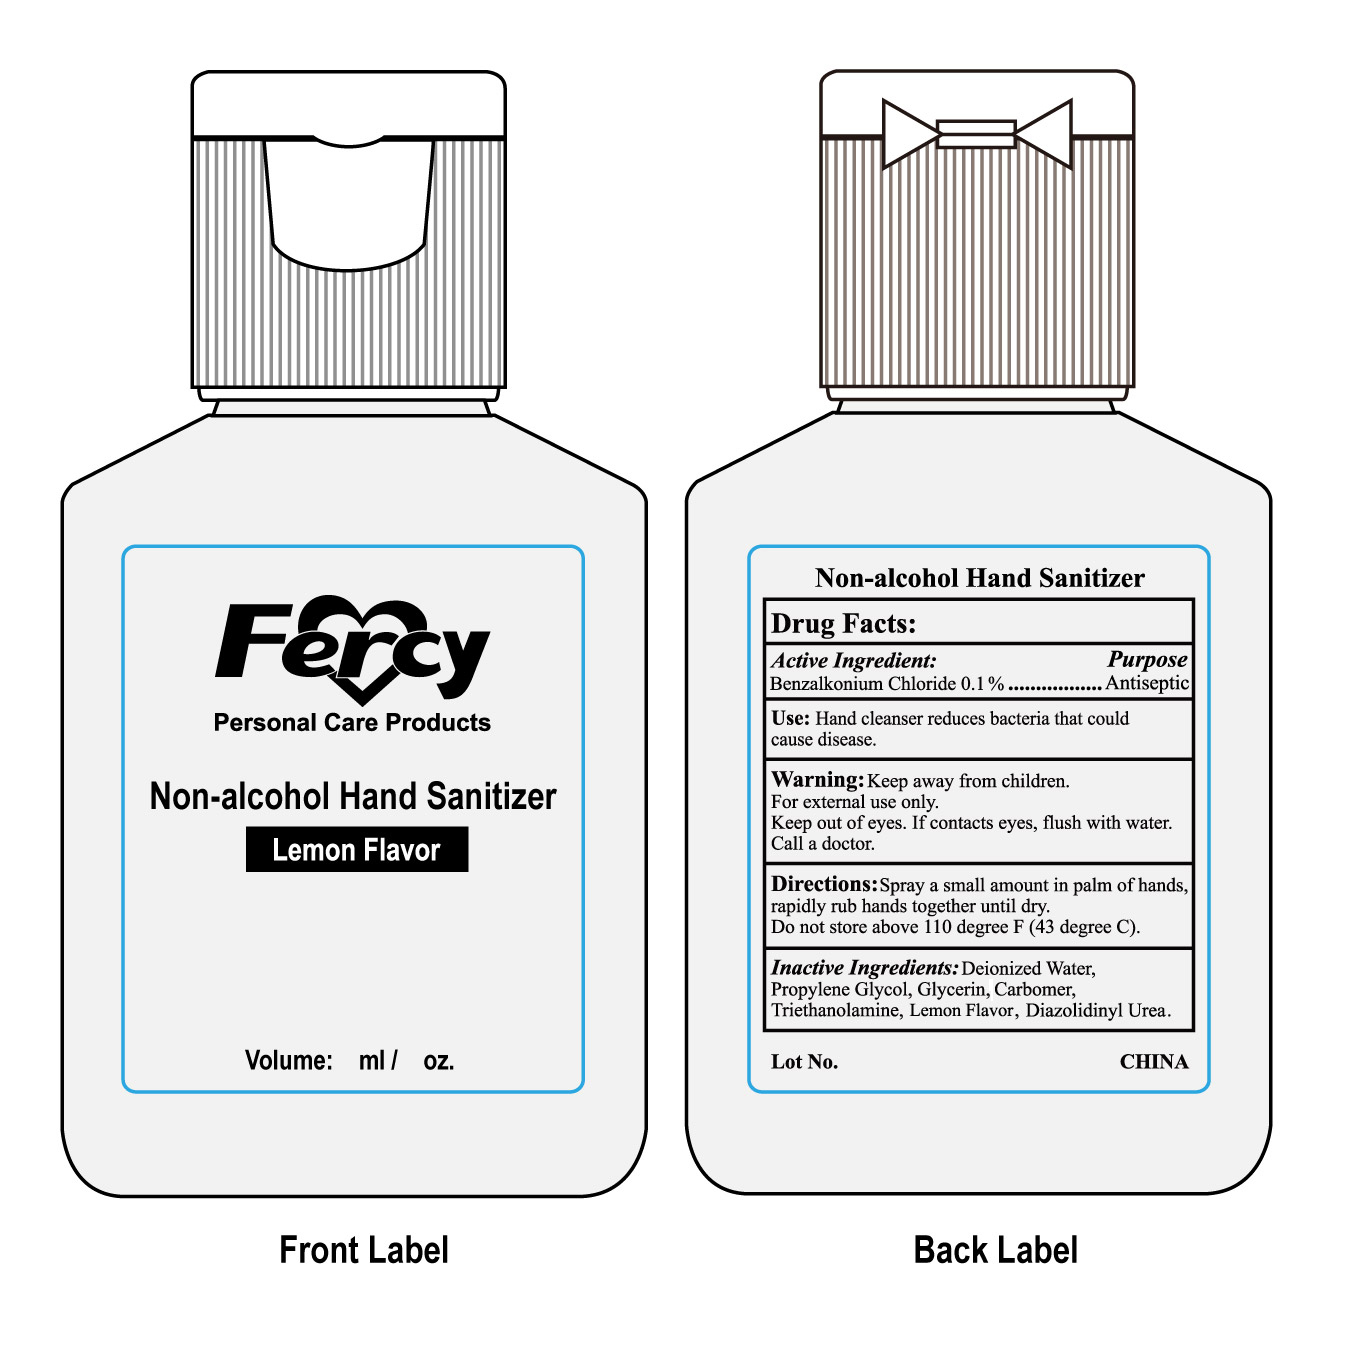 Non Alcohol Hand Sanitizer (Benzalkonium Chloride) Gel [Fercy Personal Care Products Co Limited]